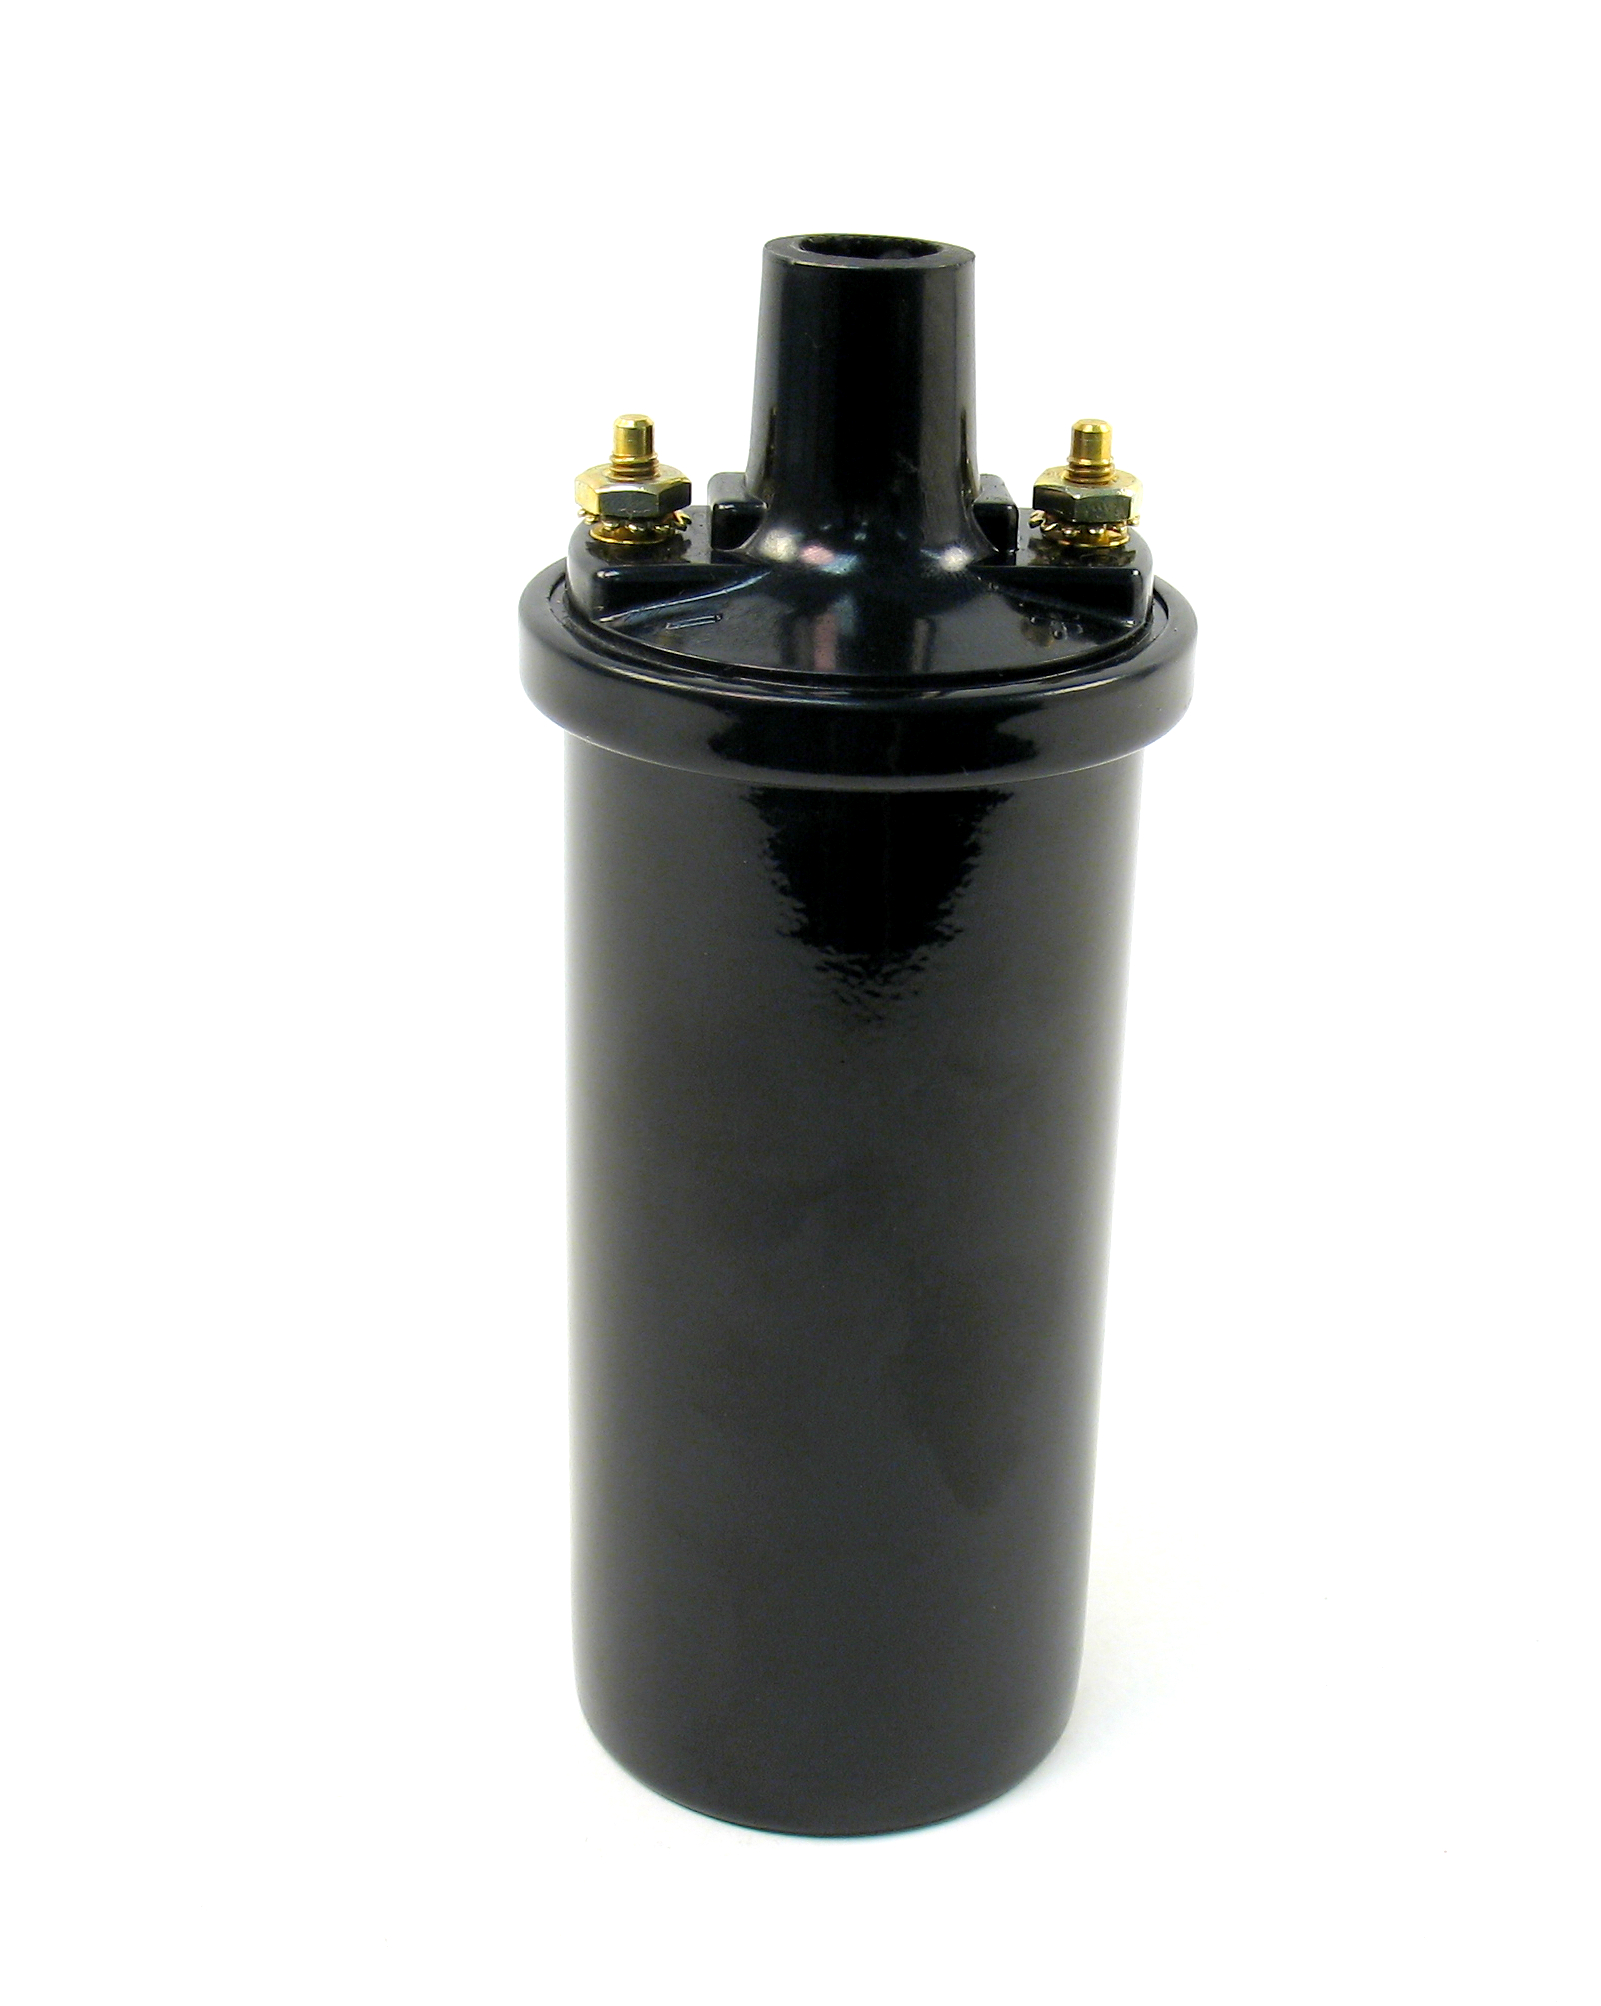 28010 Pertronix Ignition Coil Canister